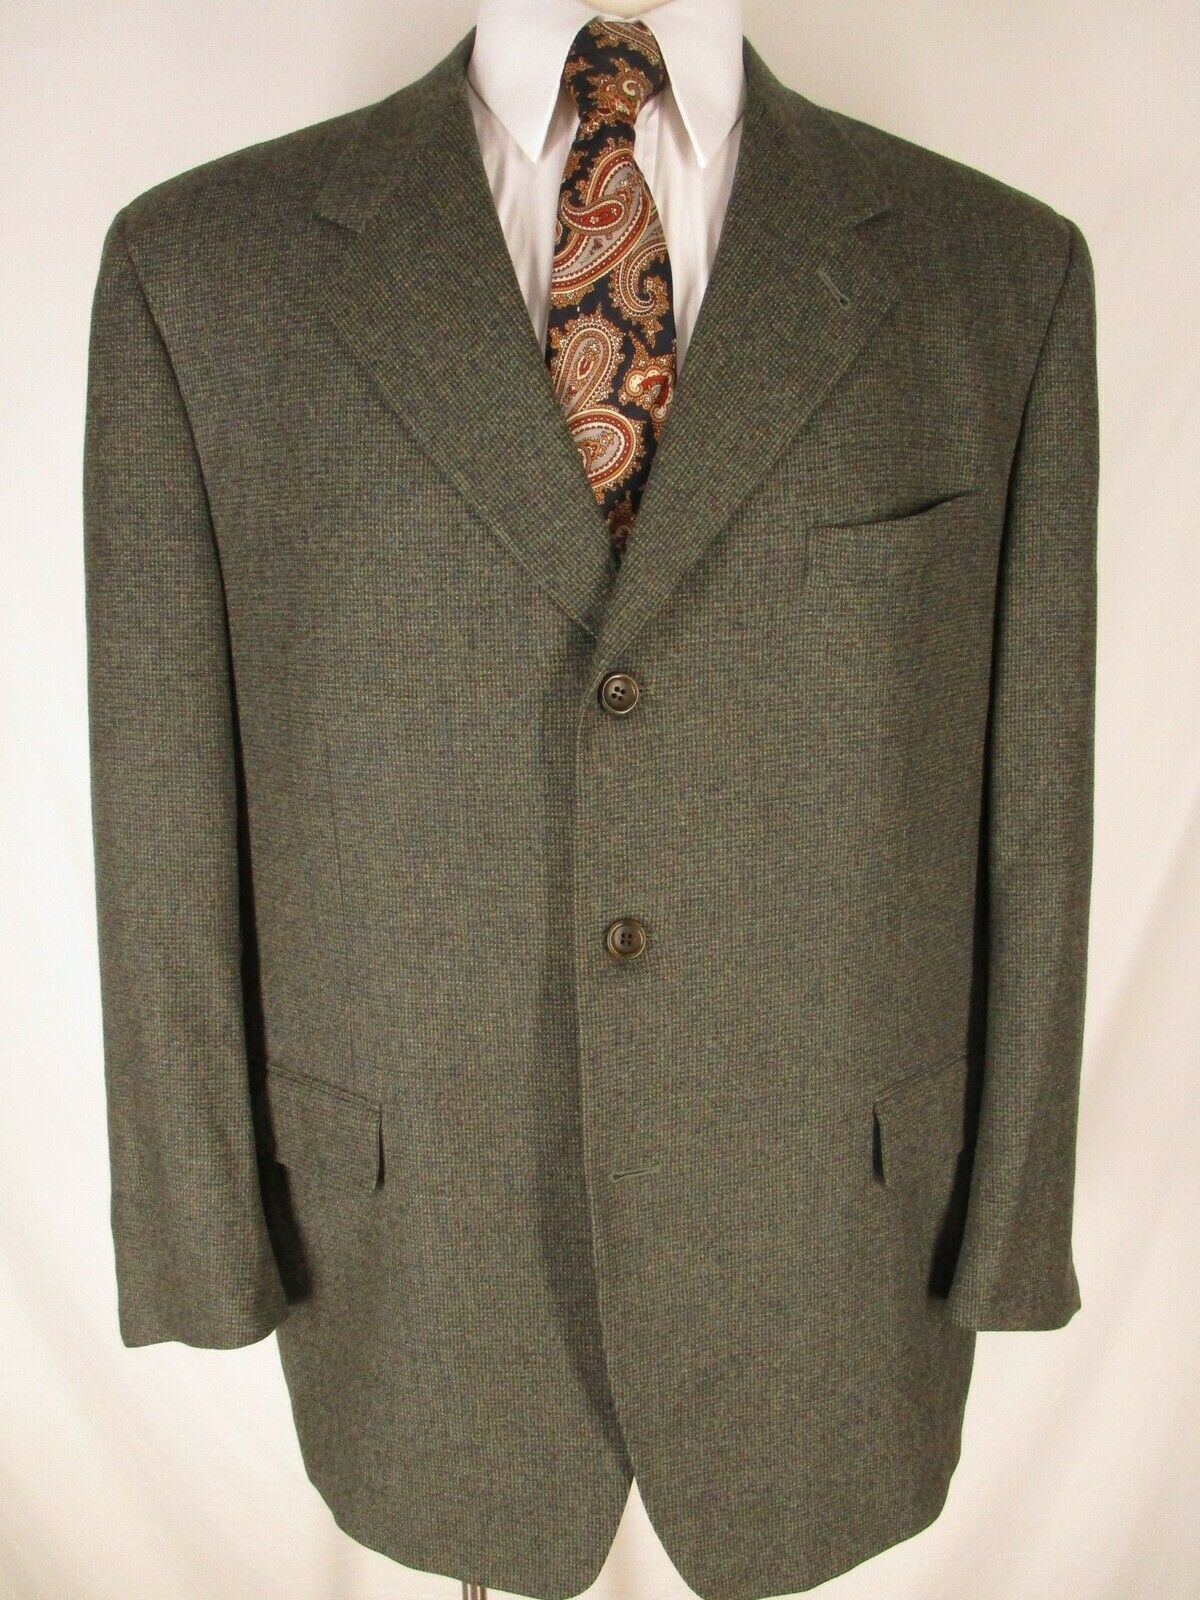 Canali Mens Olive Houndstooth 3 Btn Wool Cashmere Sport Coat 48R  Made